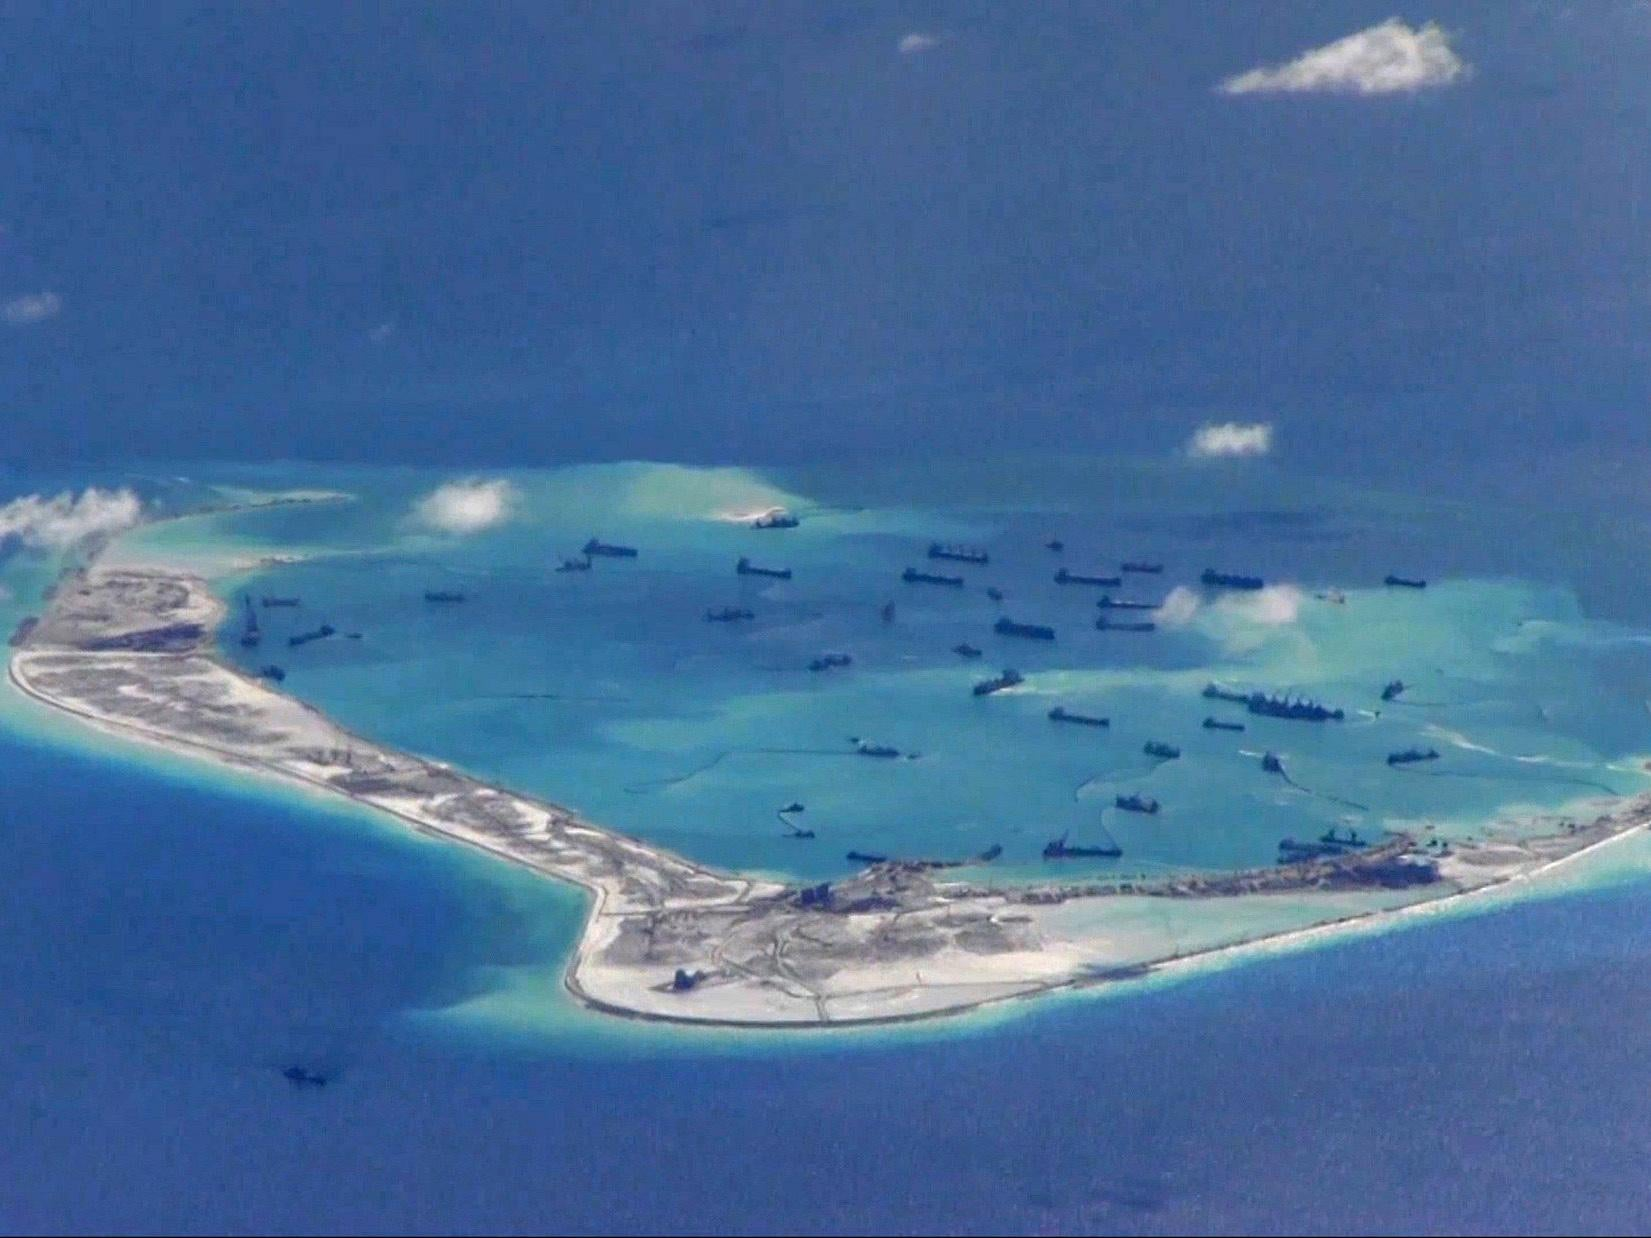 Chinese air force lands long-range bombers on island in disputed South China Sea